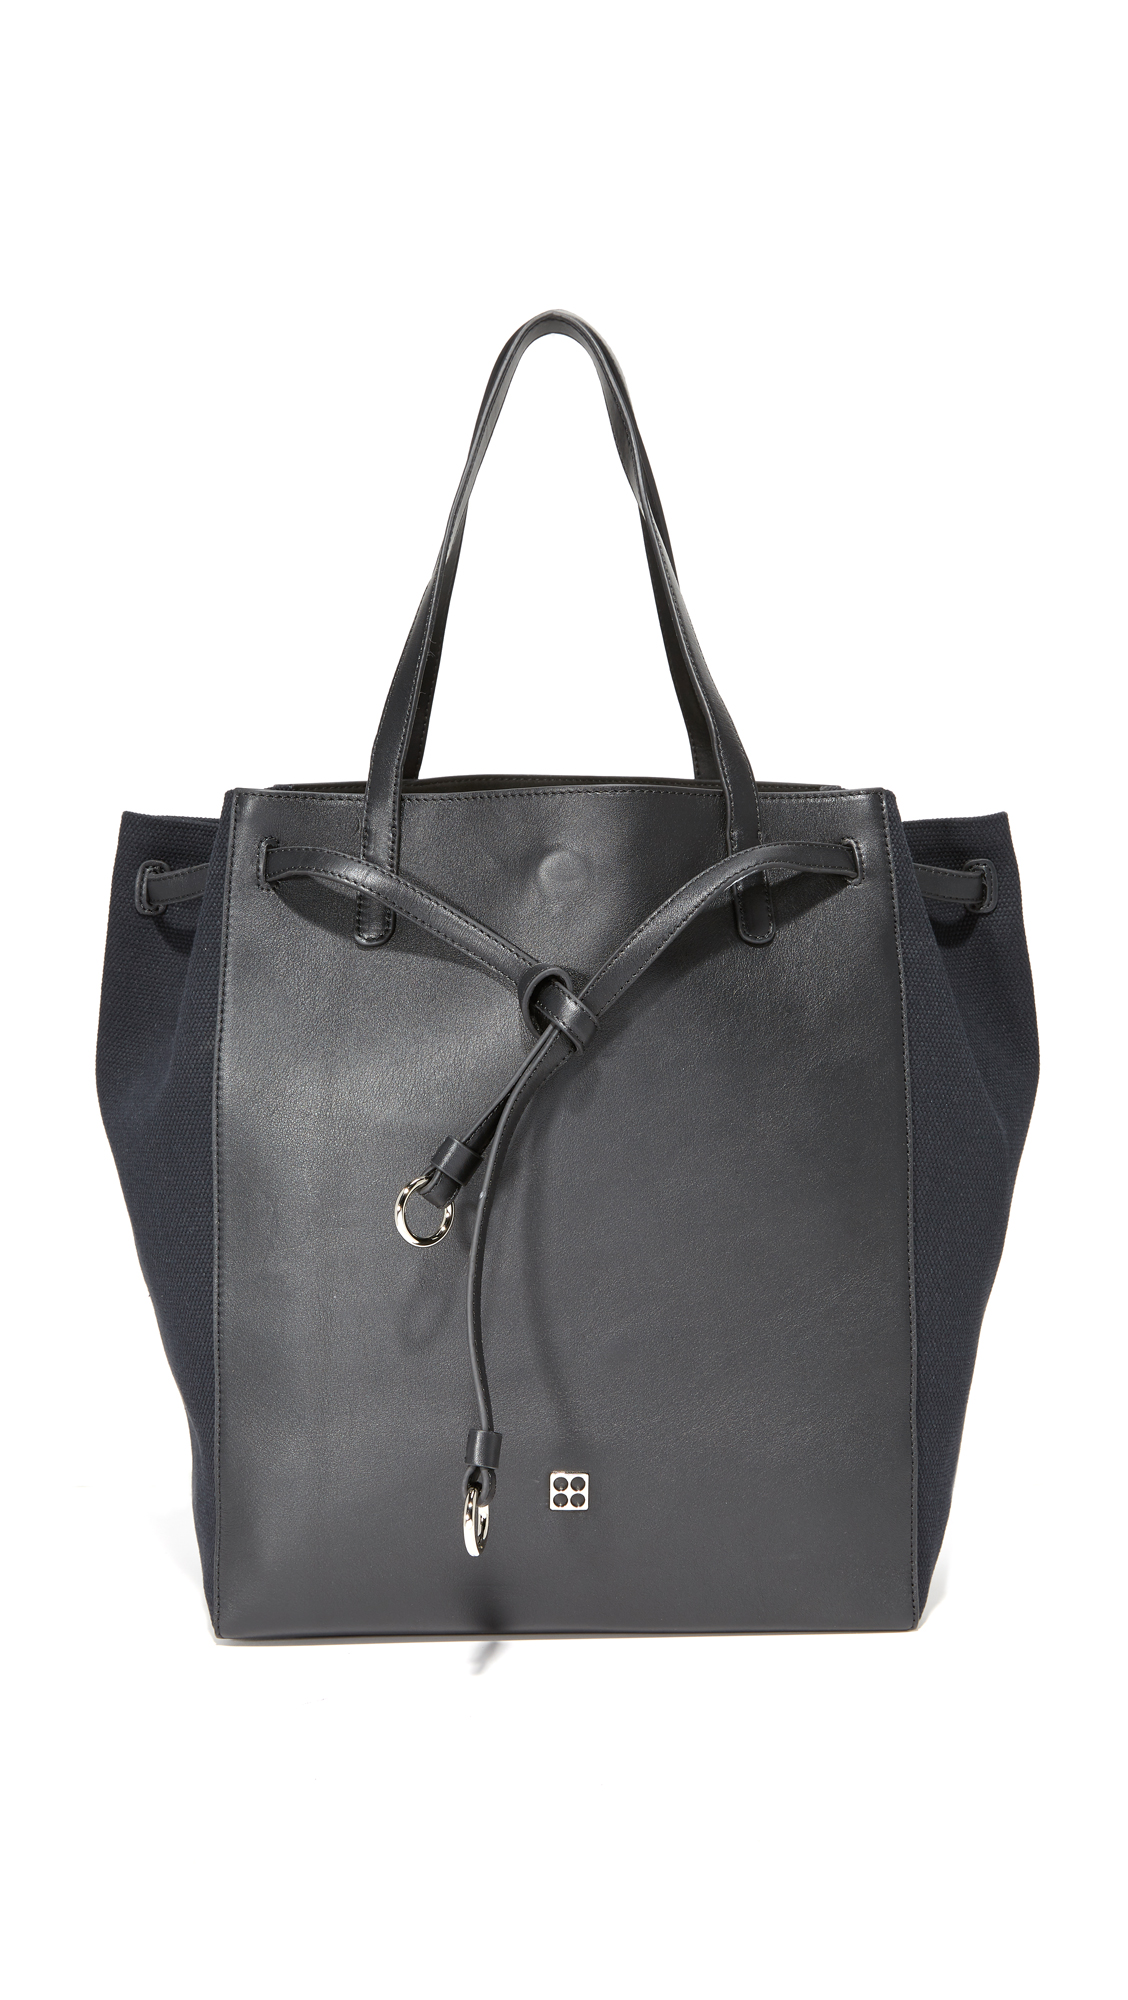 Parisa Wang Addicted Tote